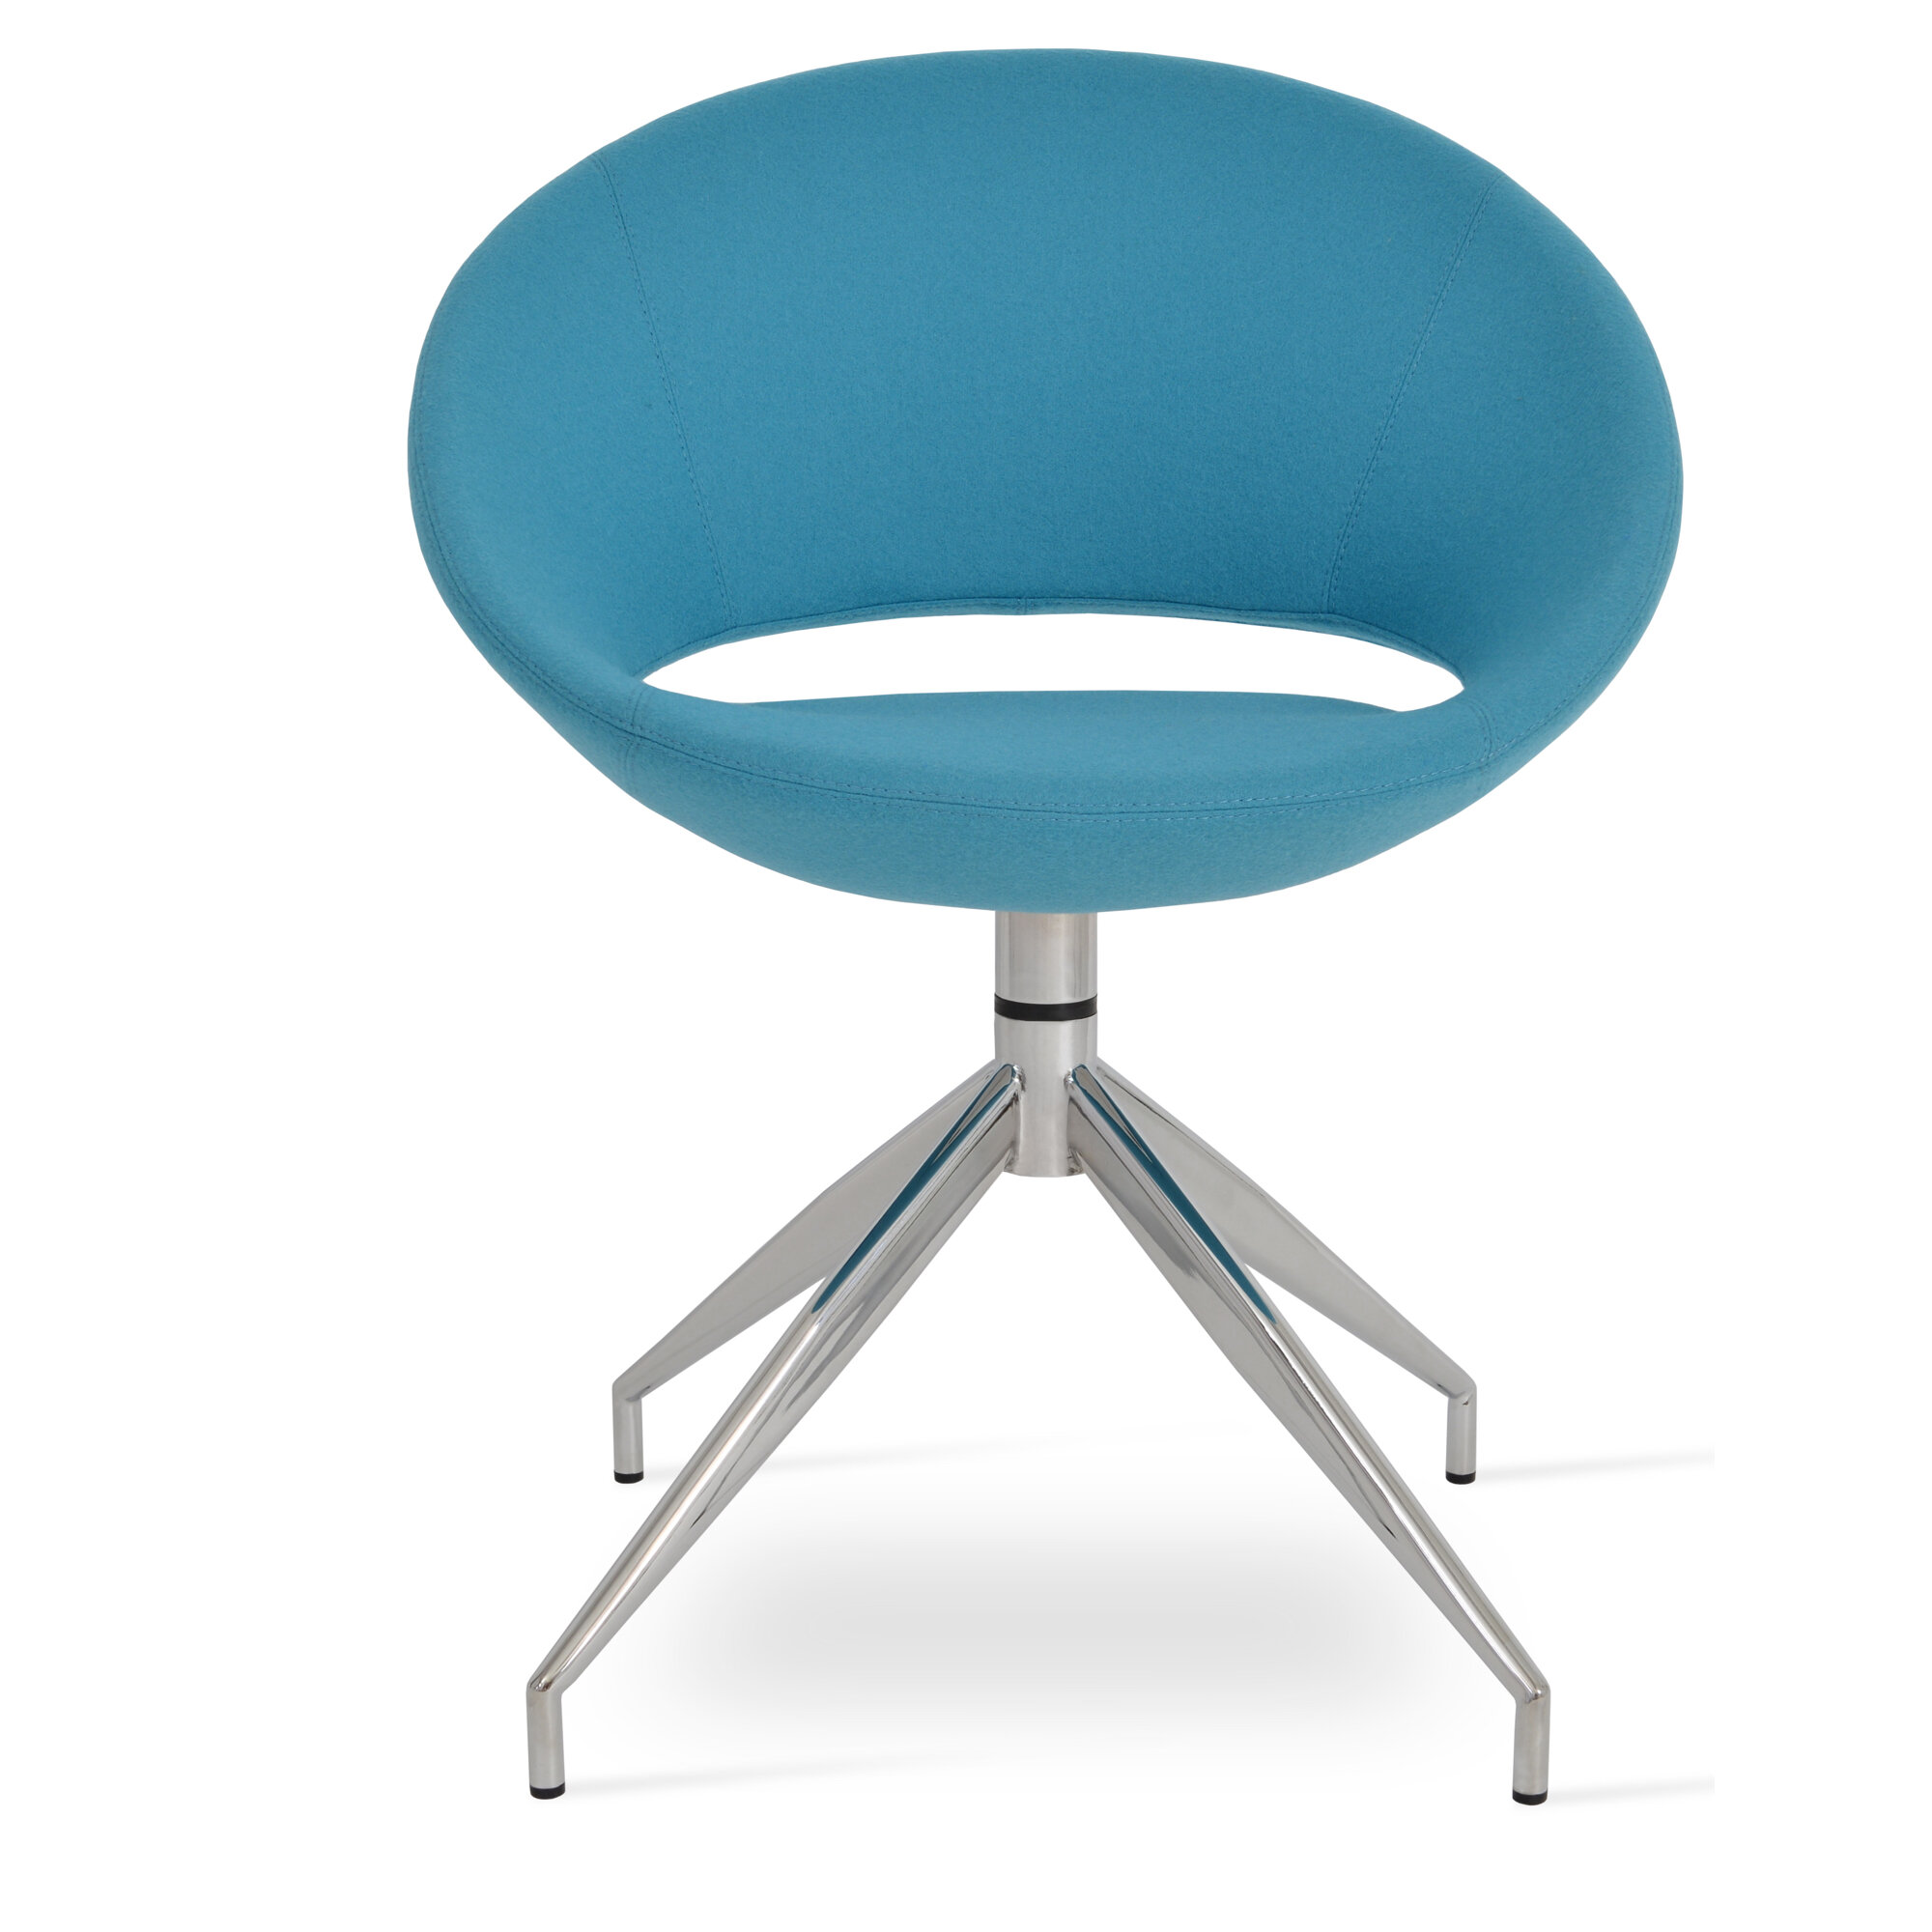 SohoConcept Crescent Spider Swivel Side Chair In Camira Wool   Turquoise |  Wayfair